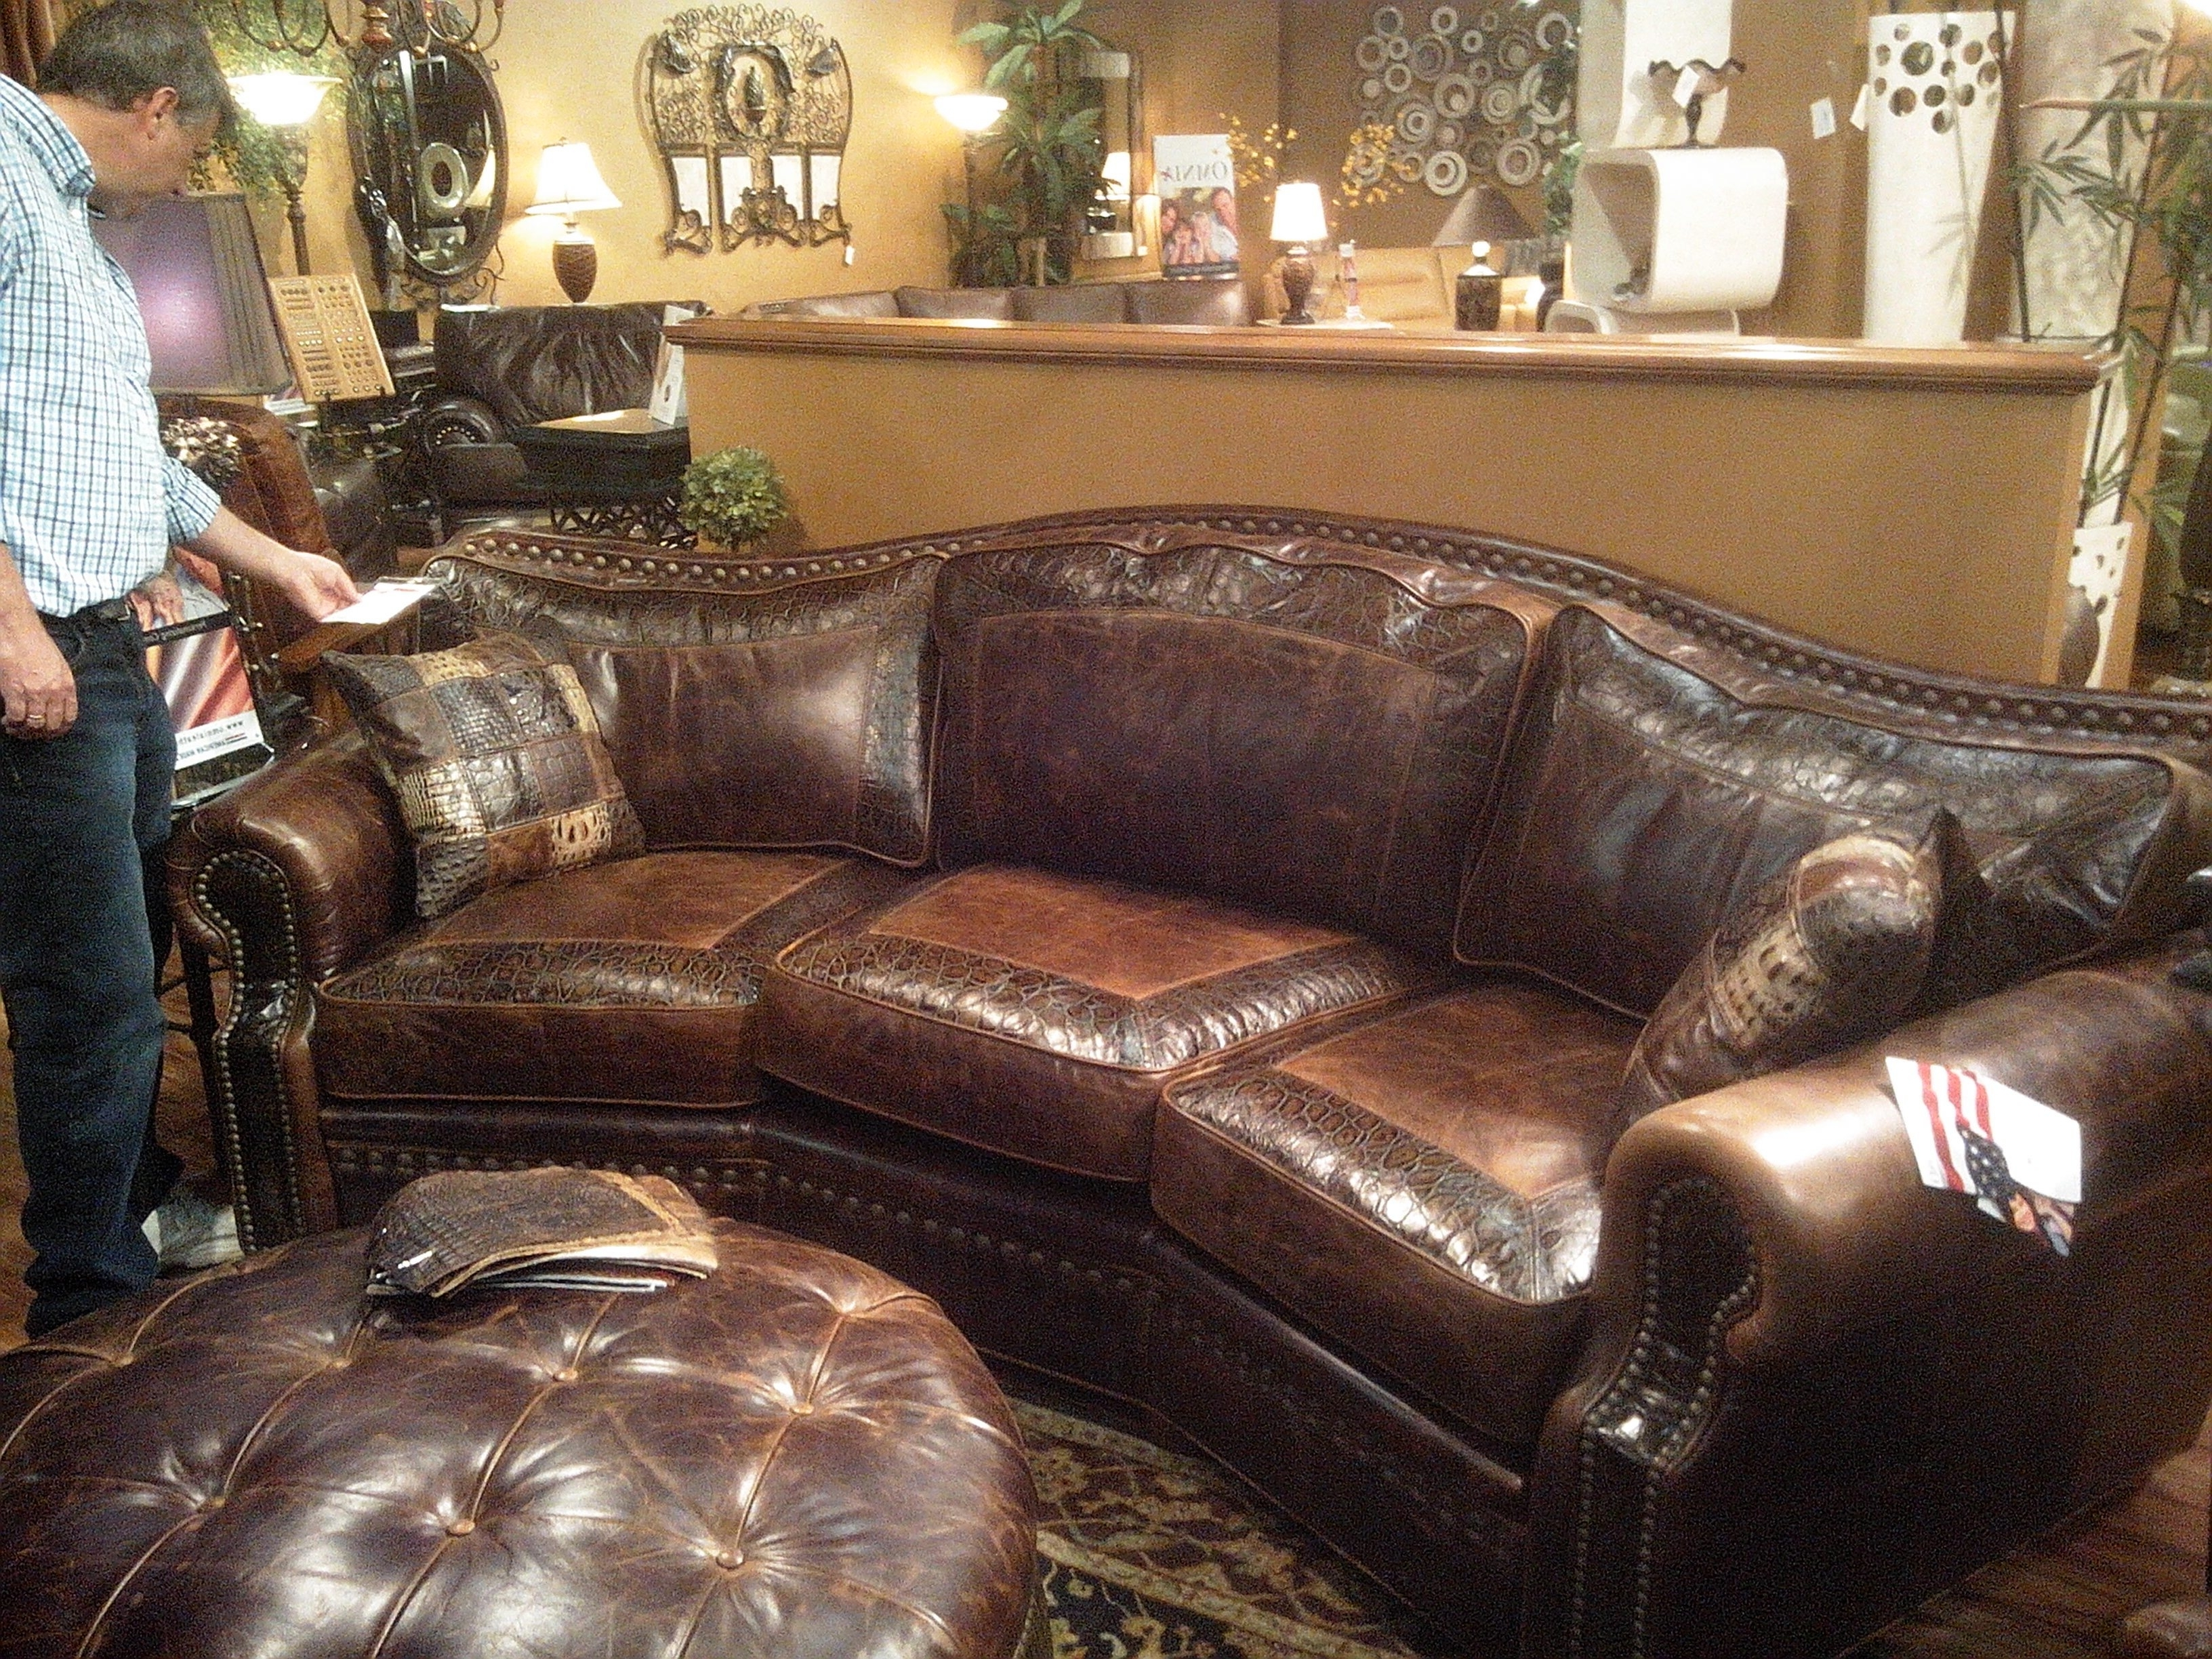 Omnia Leather Tucson Seat Conversation Couch Saw It At Recliners In Best  And Newest Tucson Sectional